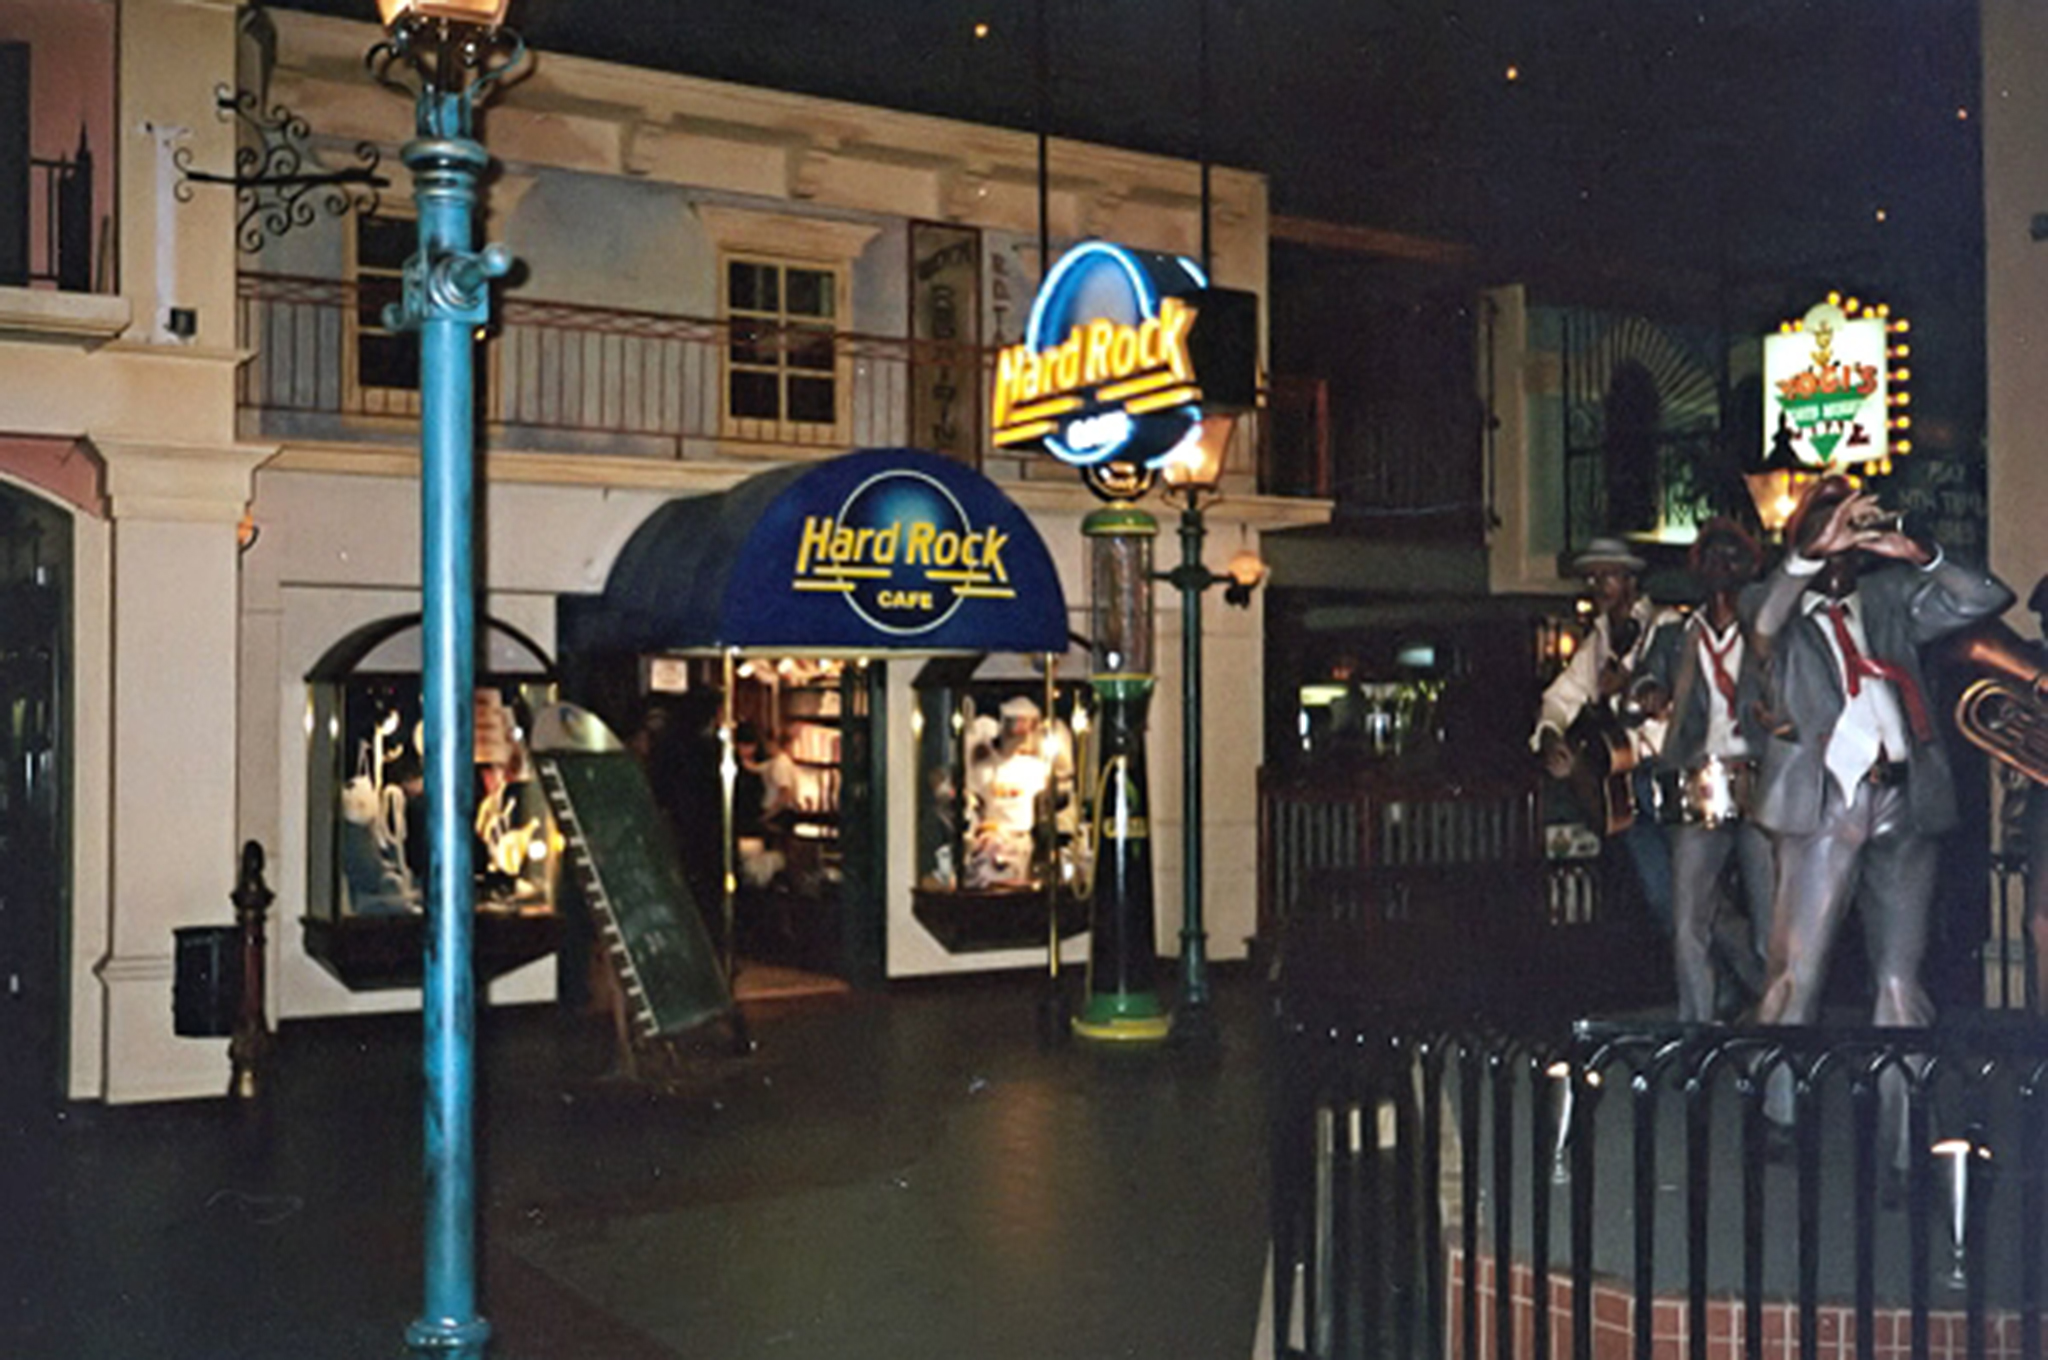 Christanson was able to find an old picture of the Hard Rock Cafe in the West Edmonton Mall. Now, he is looking for a photo of the '61 Vette on the wall.